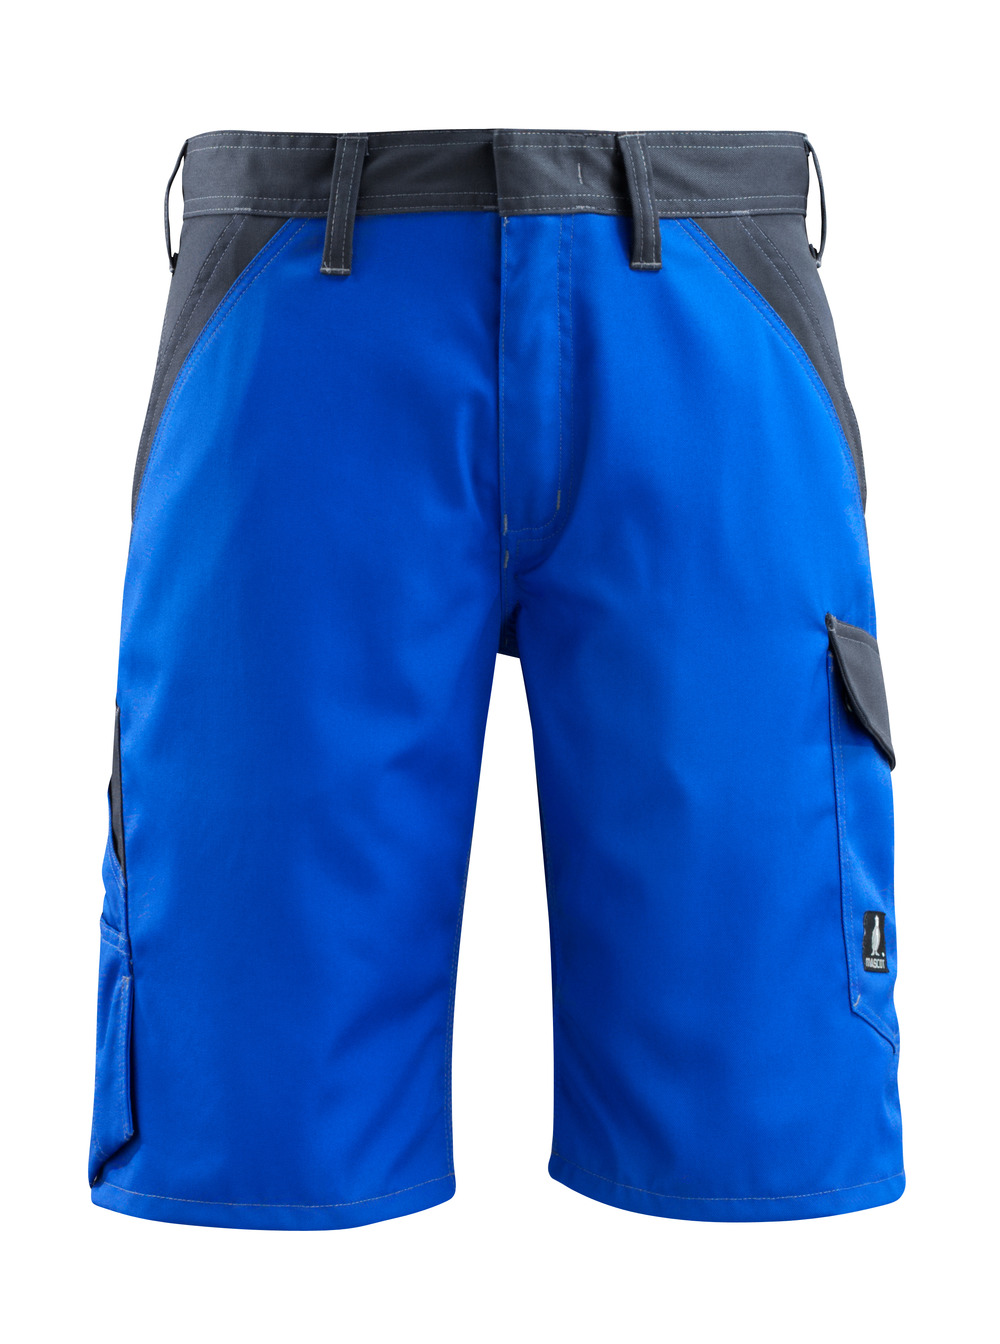 15749-330-11010 Pantalone corto - blu royal/blu navy scuro